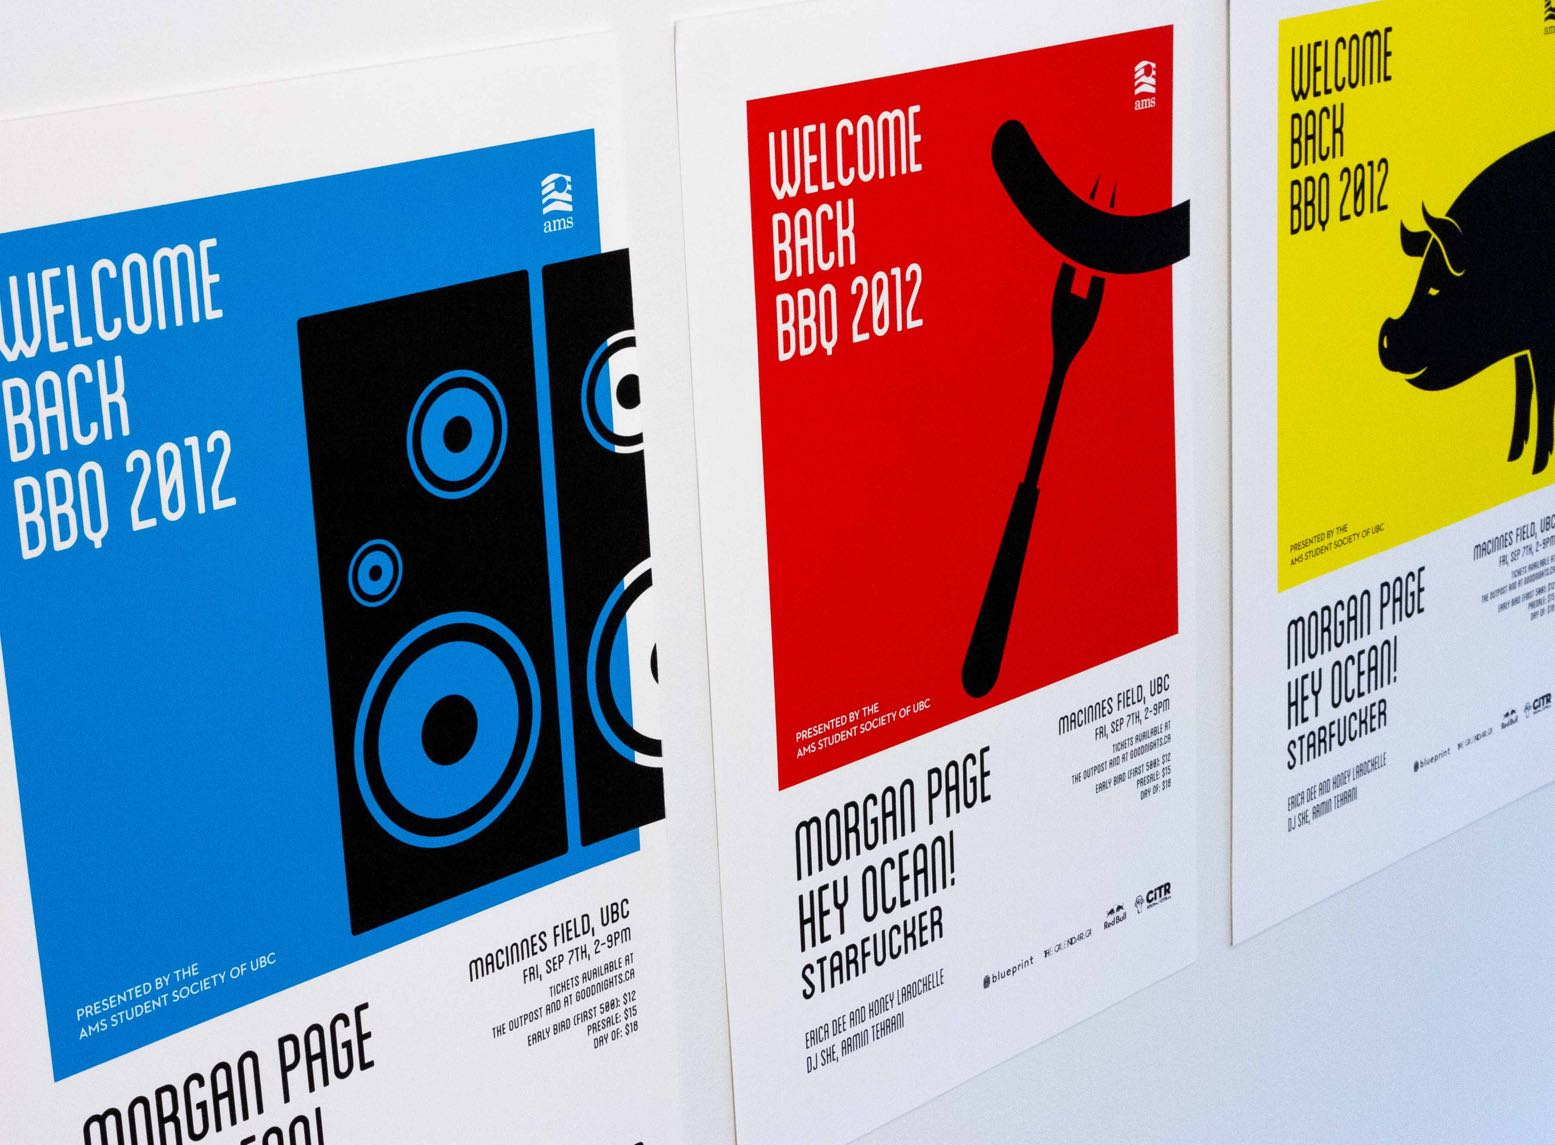 Blue, Red and Yellow posters featuring black iconogrpahic illustrations for UBC Welcome Back BBQ — by Yagnyuk.